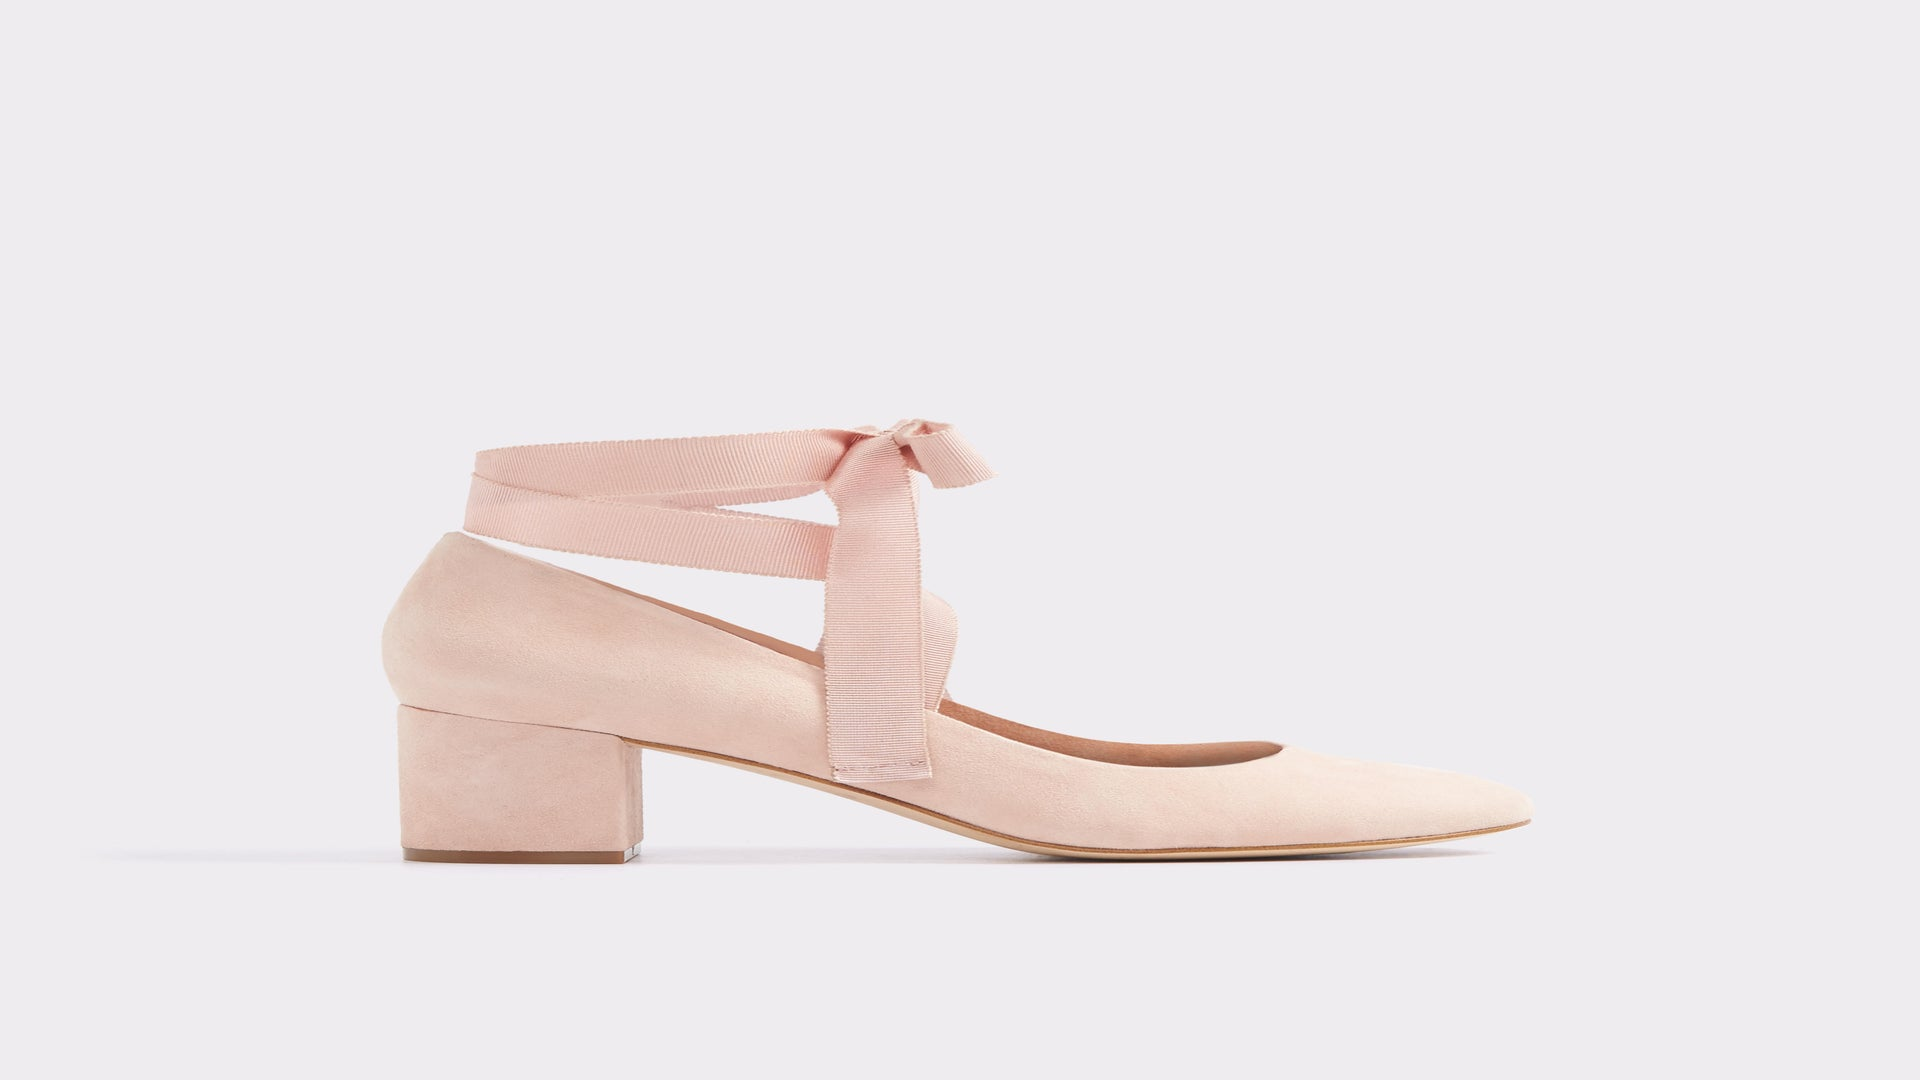 15 Must-Have Shoes for Graduation